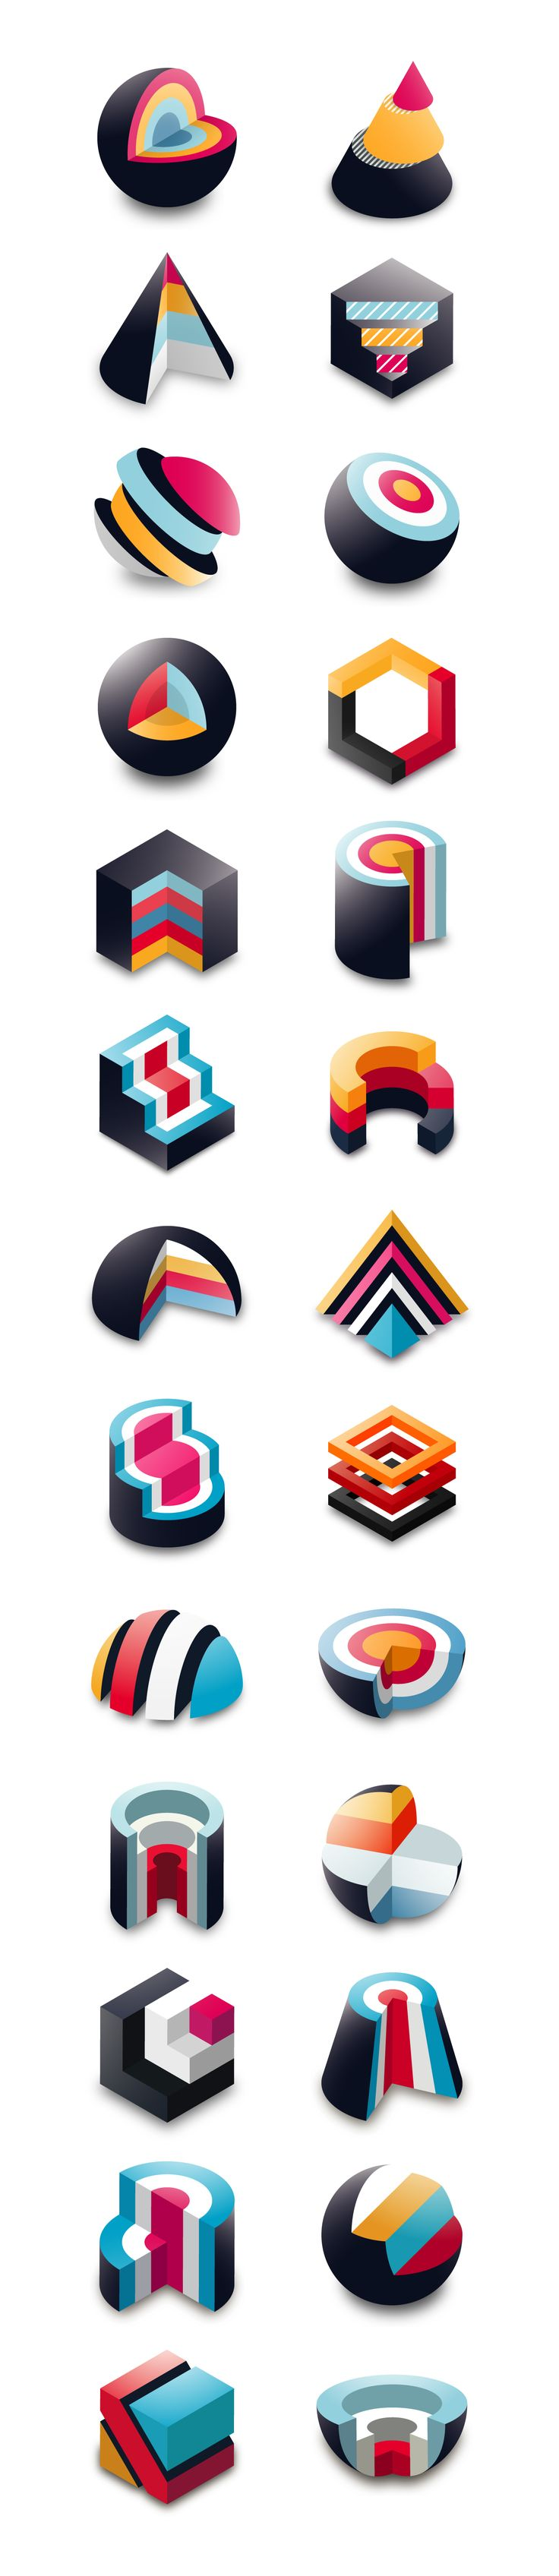 This project is a result of my exploration in the world of geometry. Momentum idea transformed into a real passion. Conceptually attractive shapes in combination with the vibrant colours create unusual feeling of the isometric beauty.